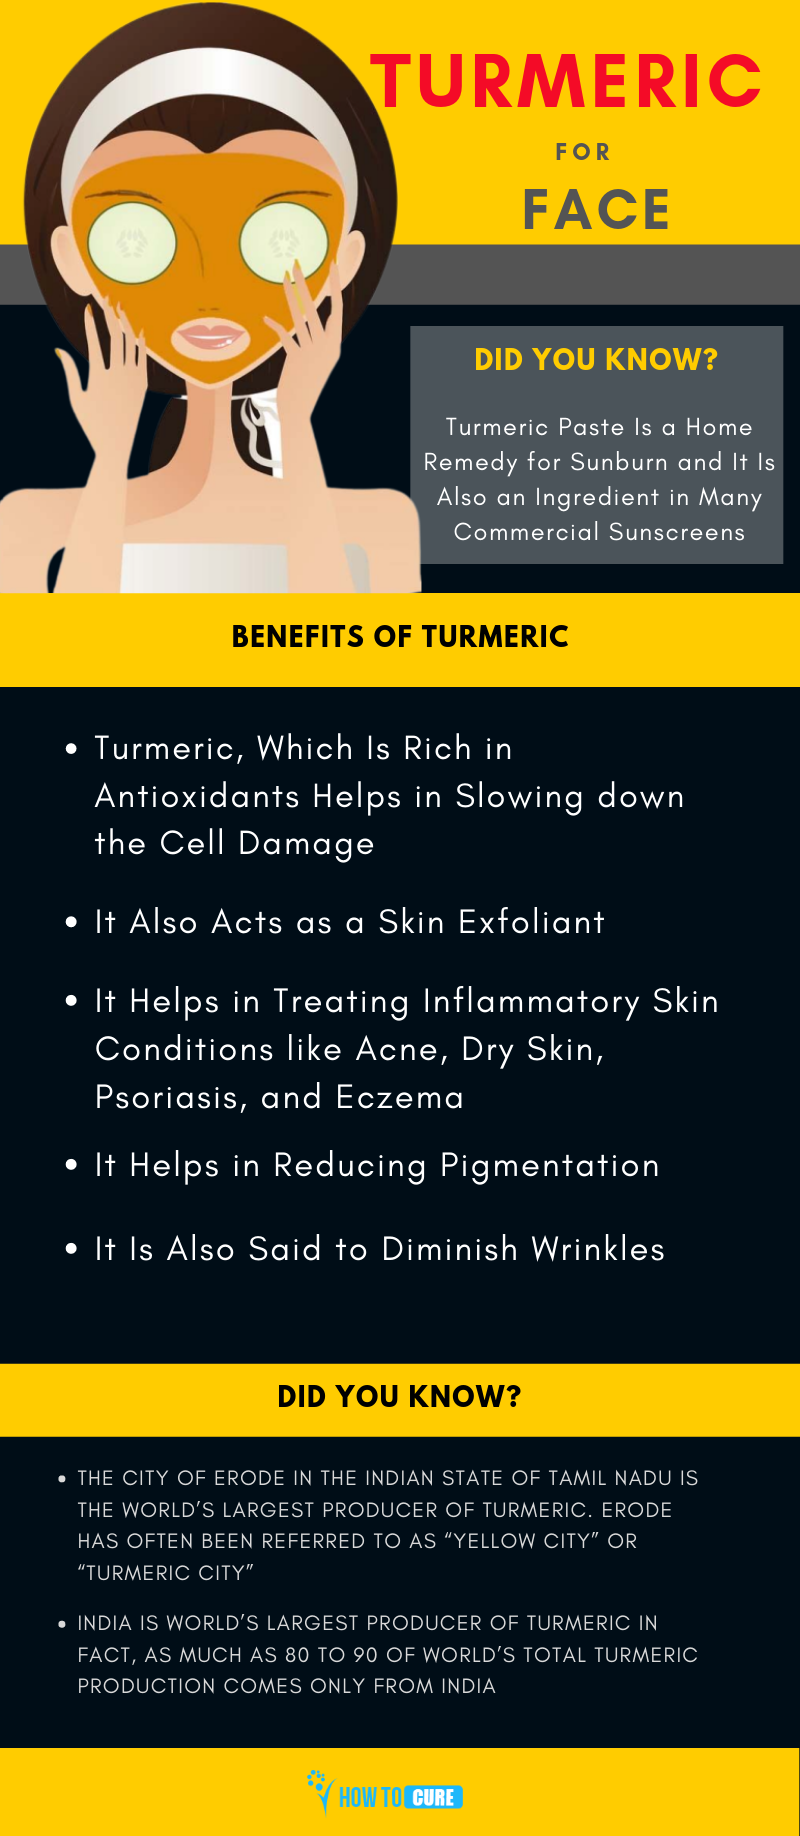 turmeric for face - infographic